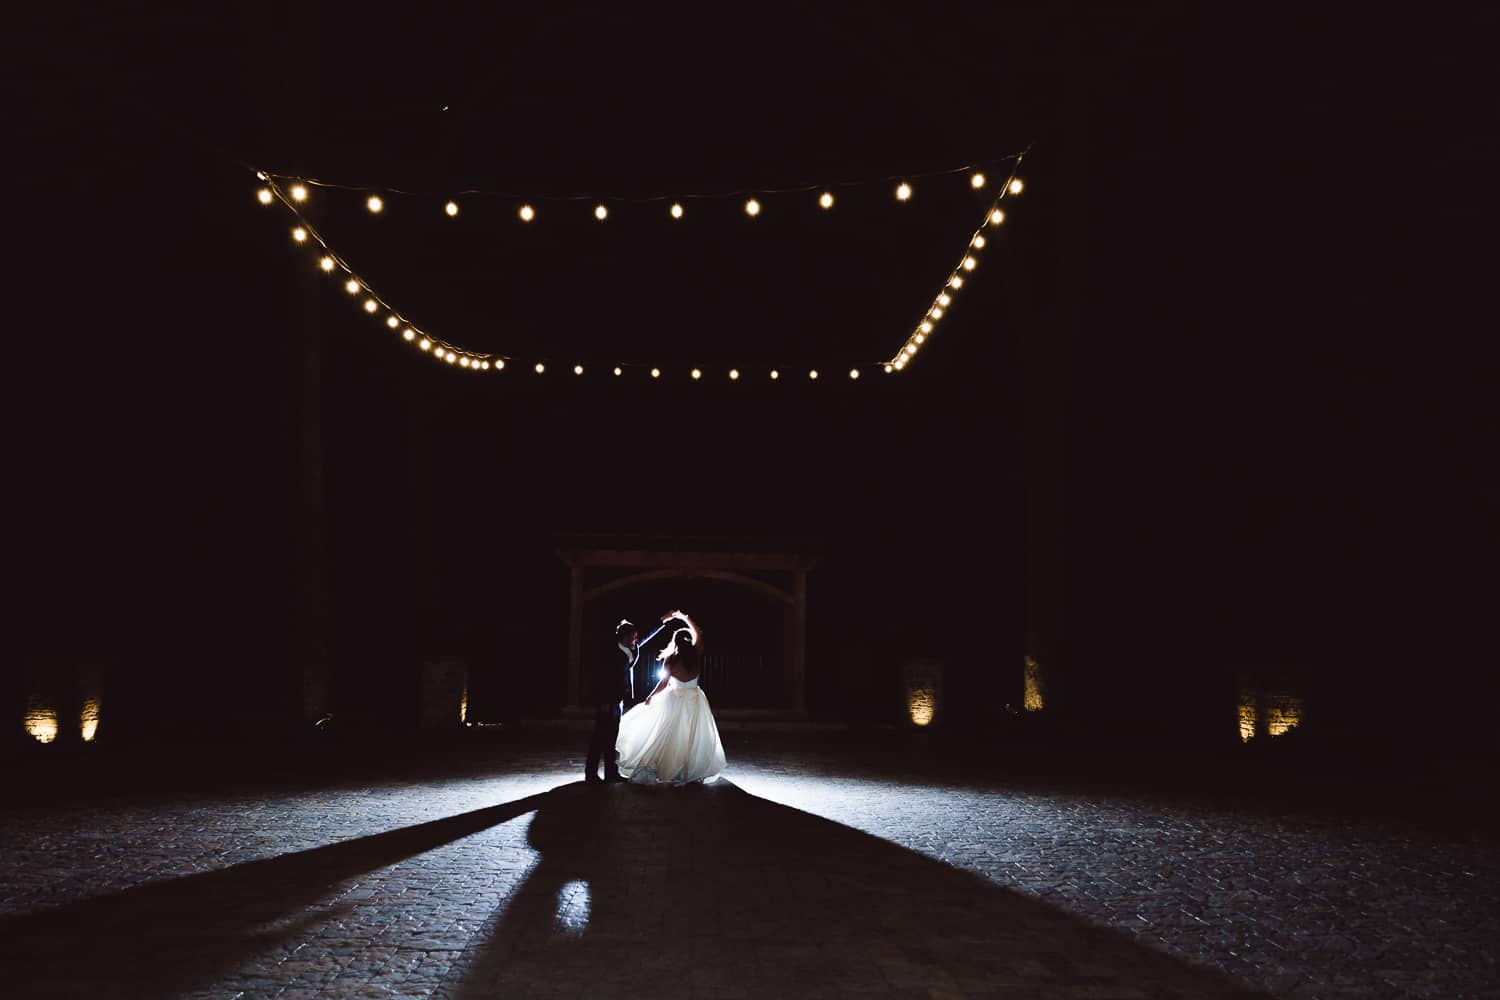 Night pictures at Timber Creek Event Center in St. Joe